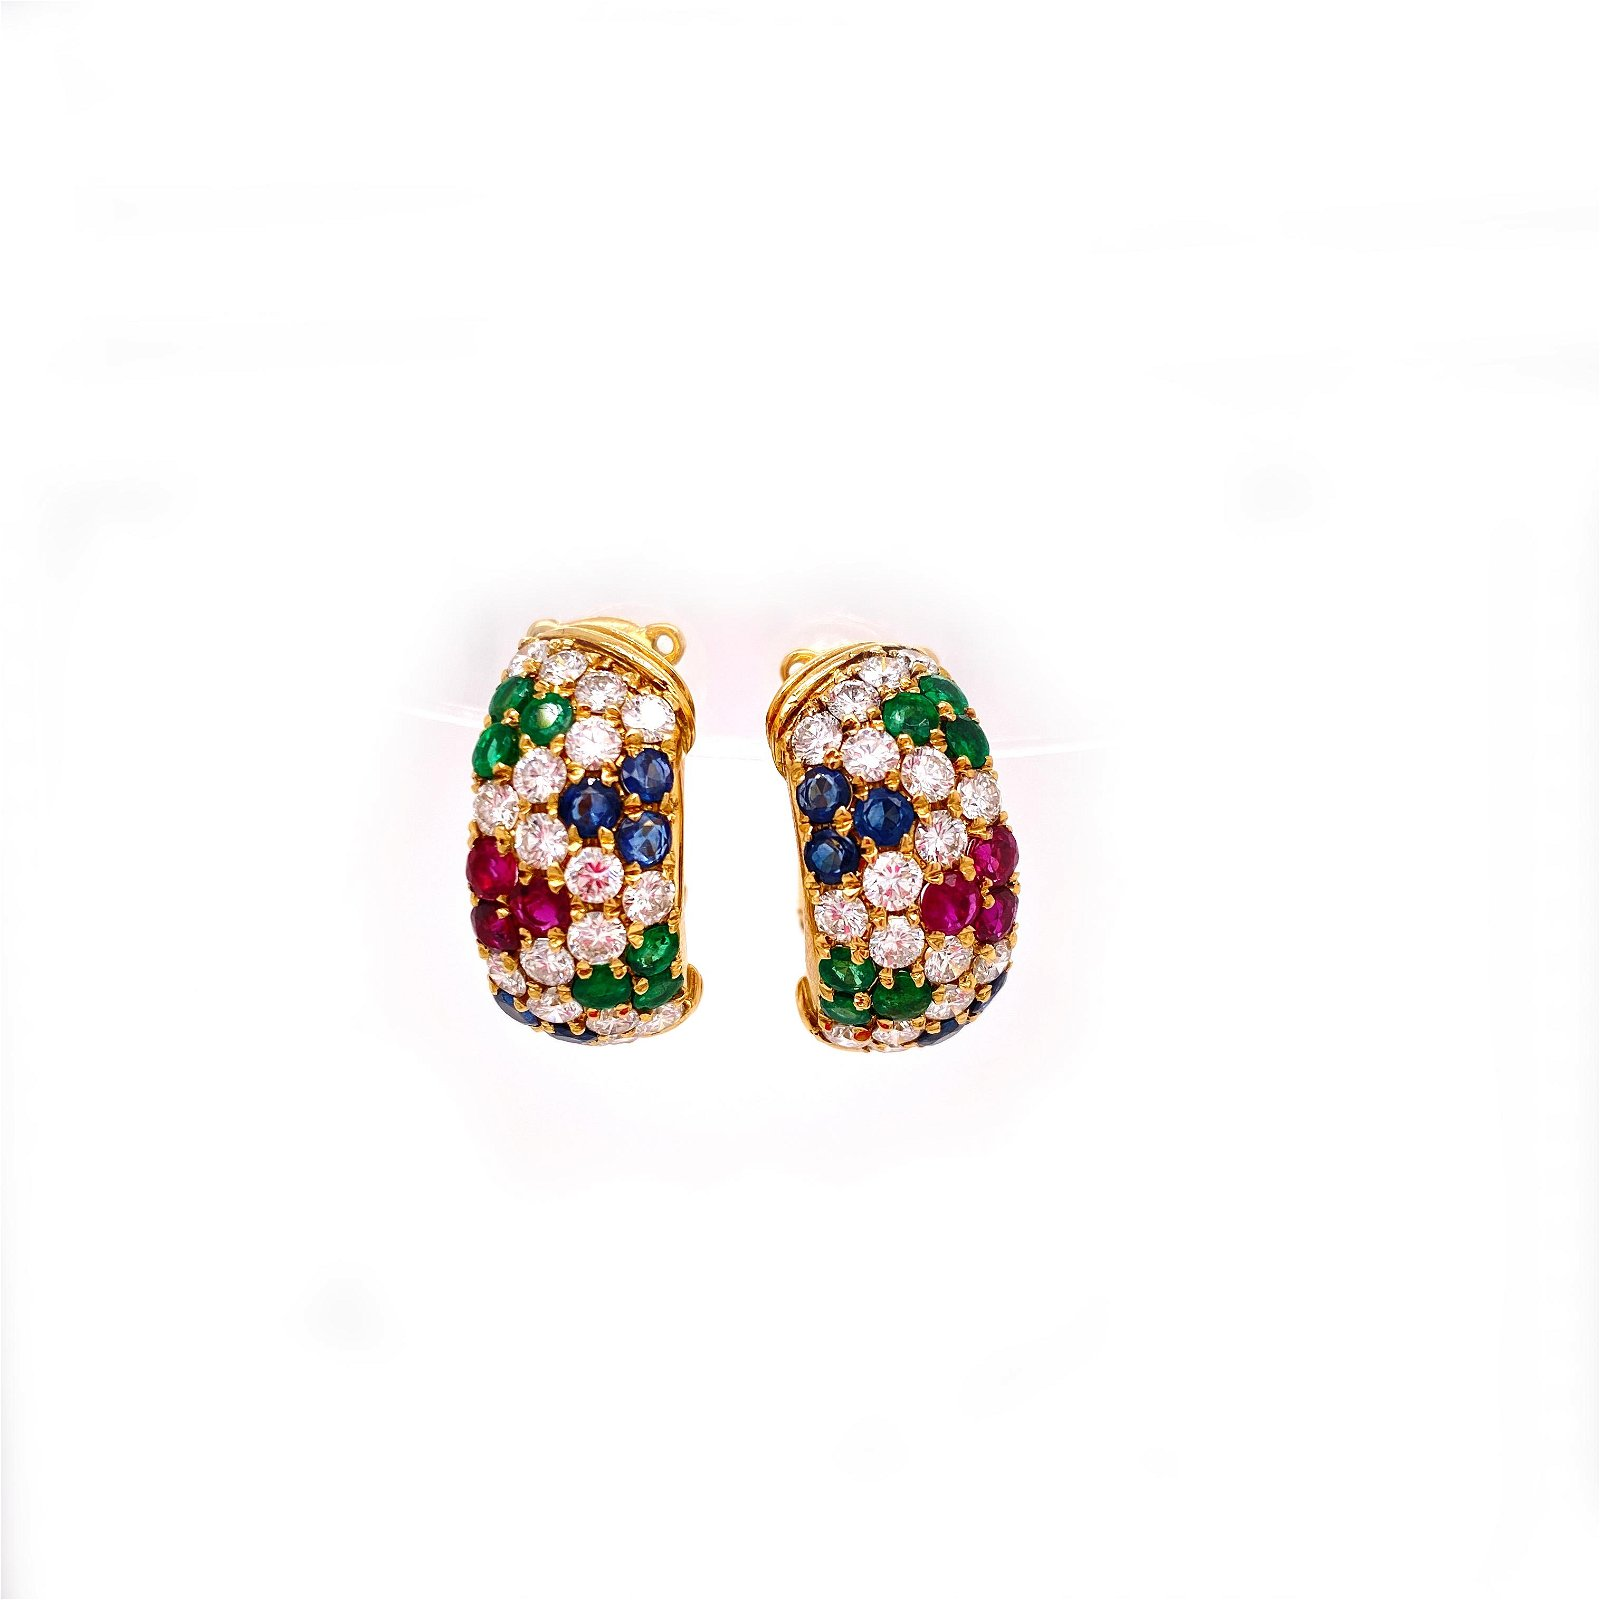 18 k yellow Gold, Rubies, Emeralds, Sapphires and